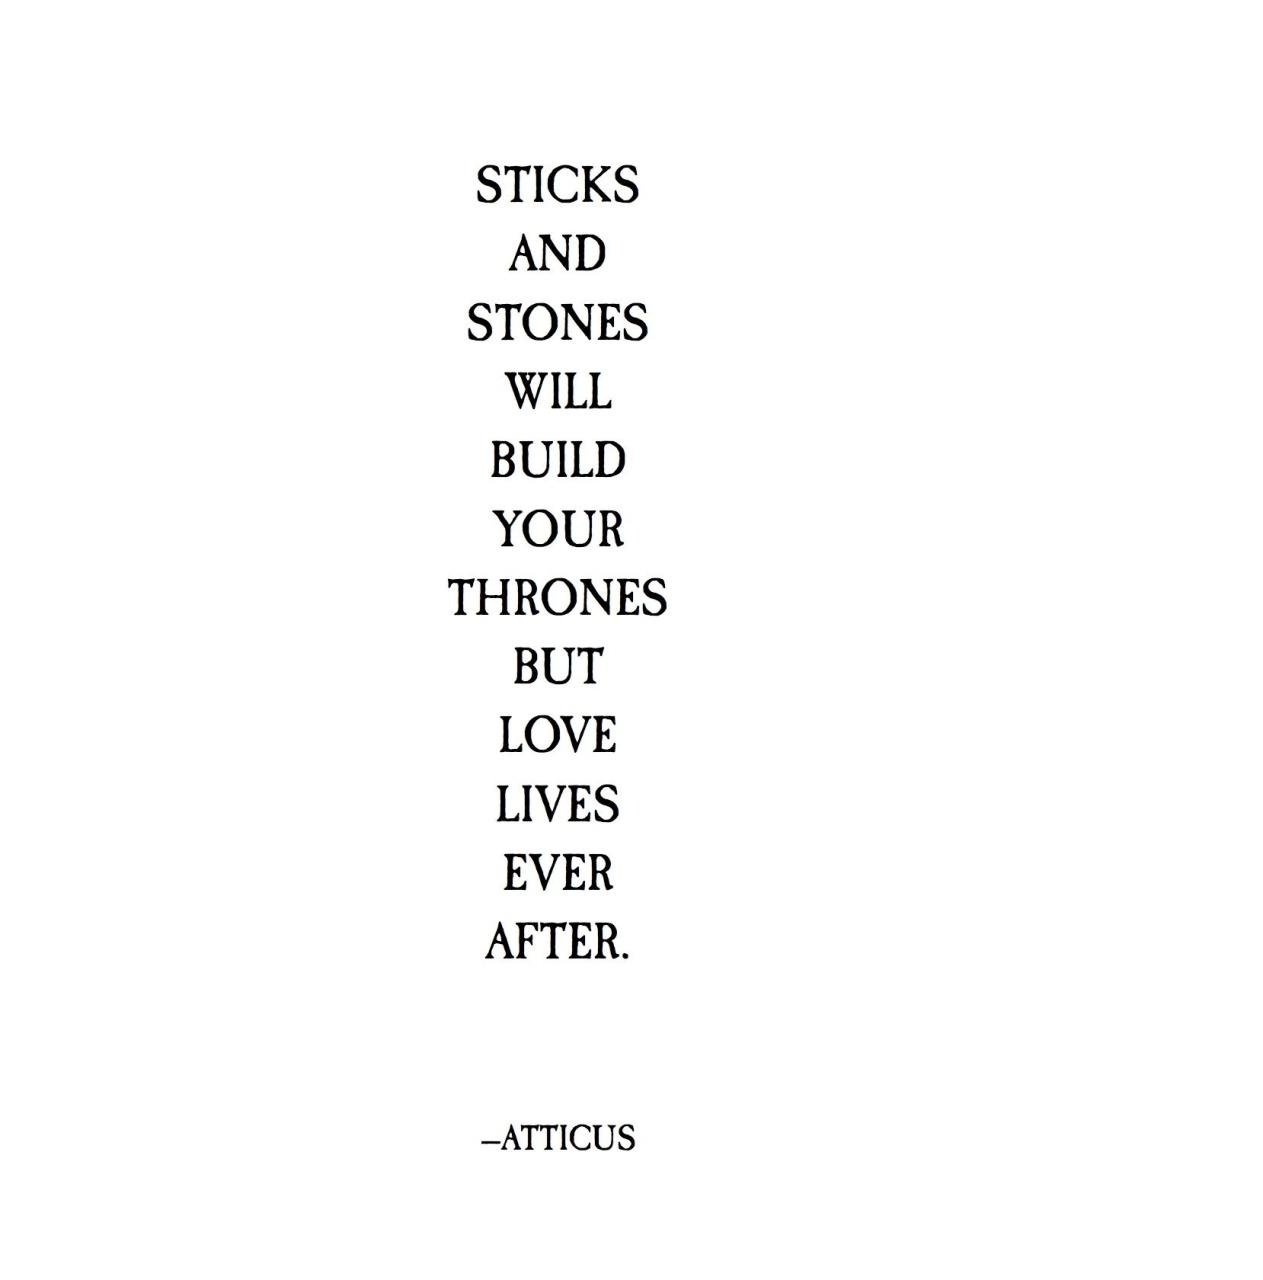 Sticks And Stones Will Build Your Thrones But Love Lives Ever After Atticus Poetry  C B Craft Quotespoem Quotestrue